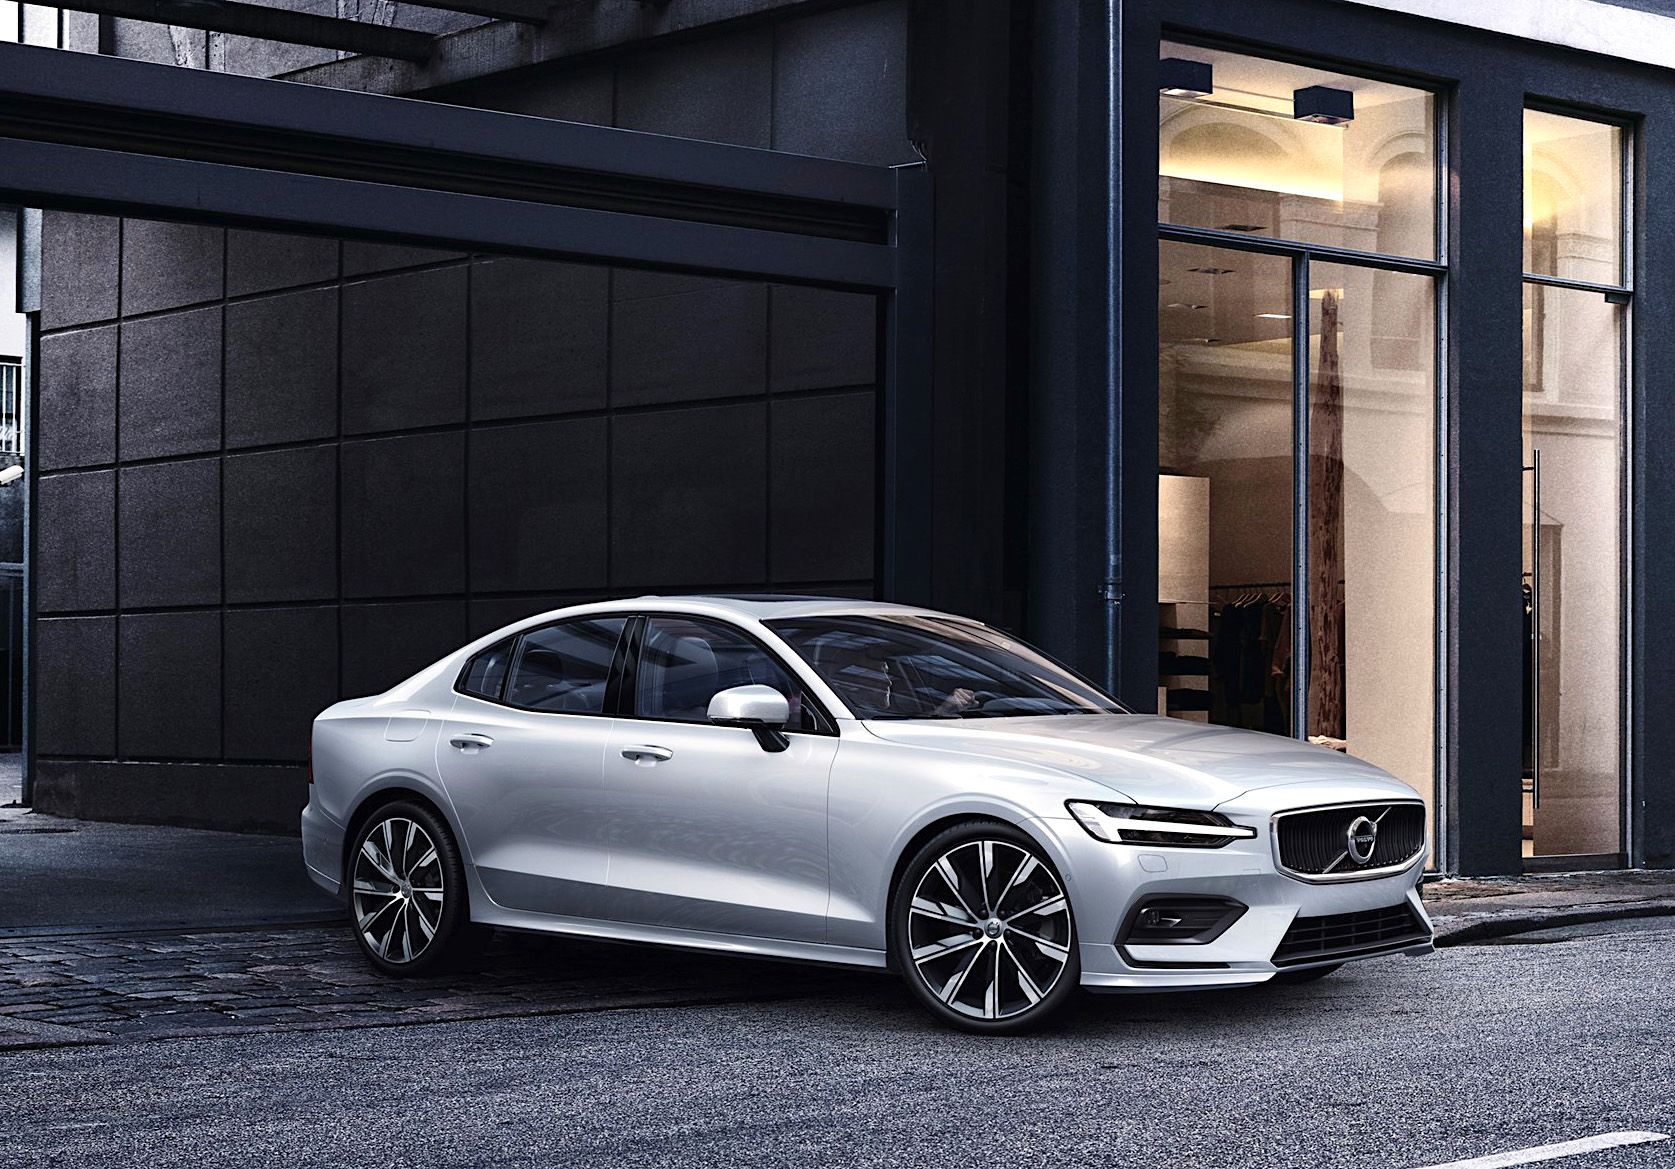 2019 Built-in-America Volvo S60 is one sweet Swede | Palm